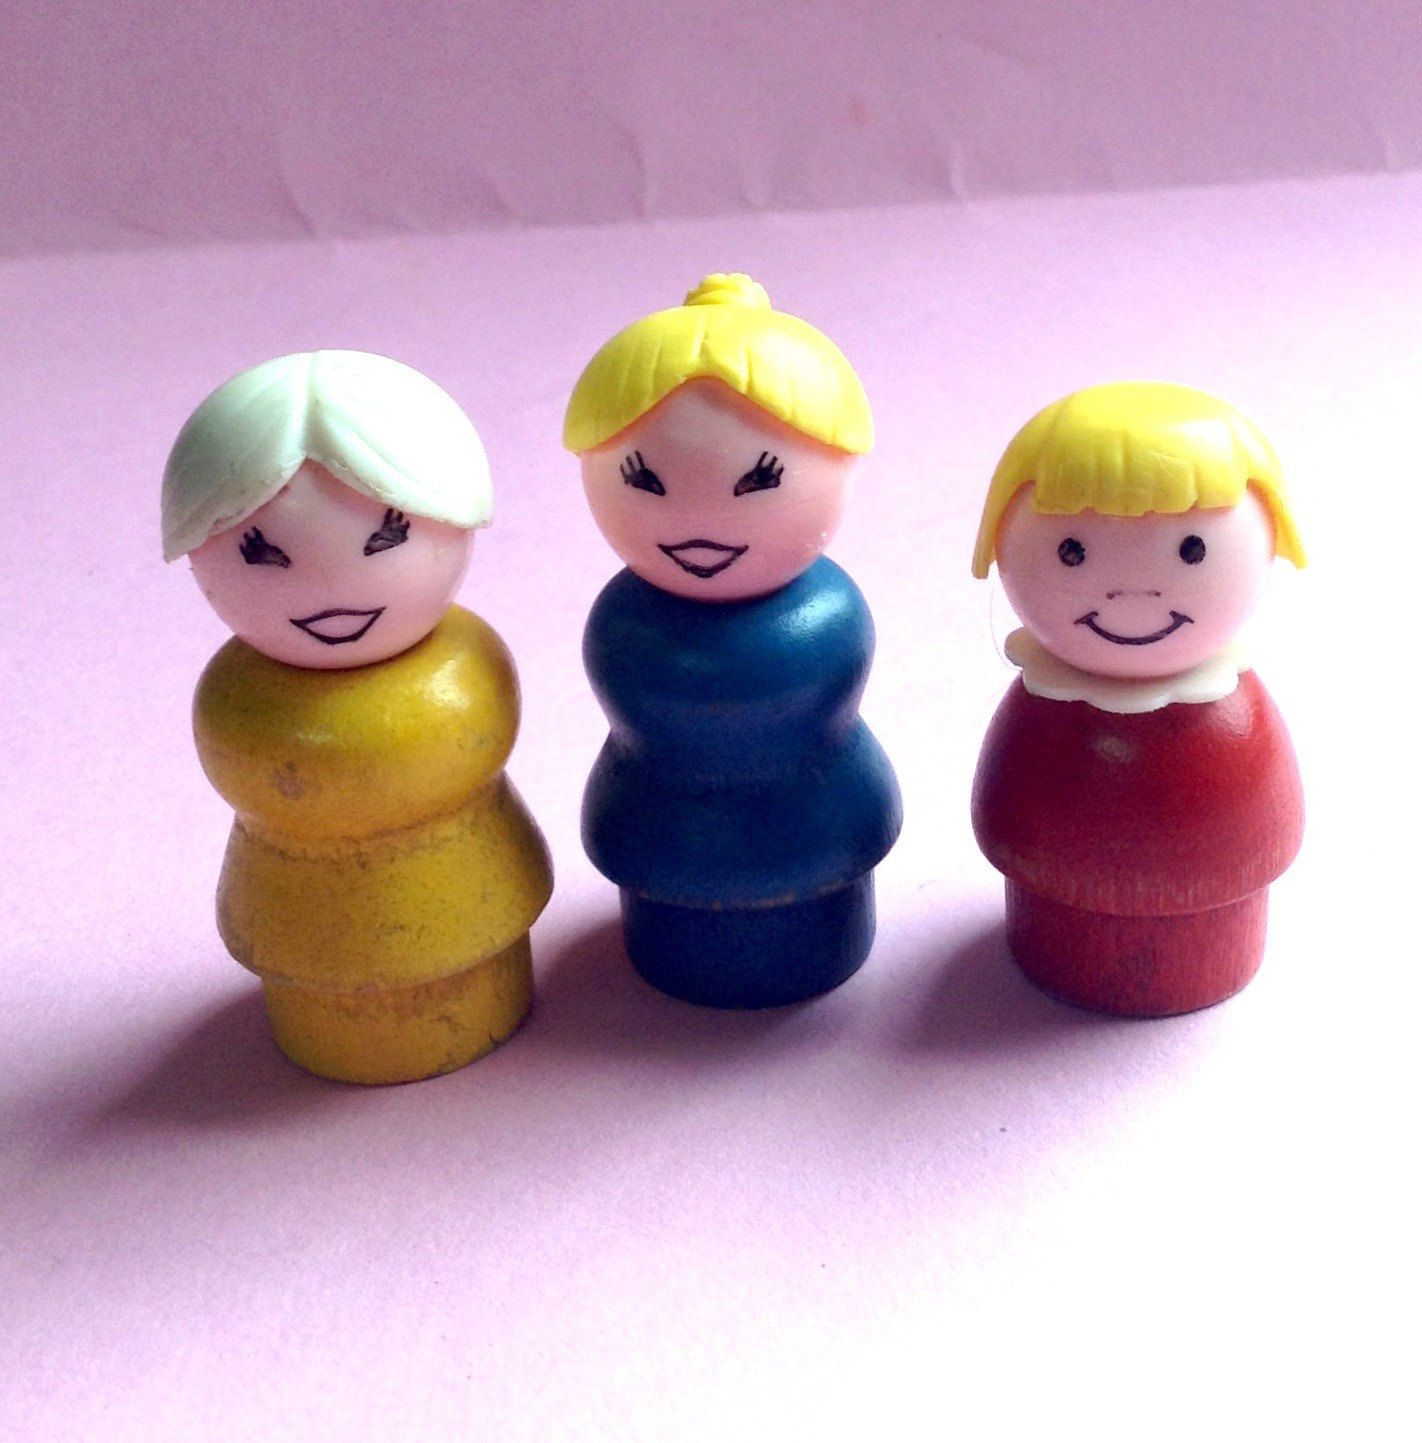 Vintage 70s Fisher Price Little People Wooden Body Plastic Head Lot of 3 Pretend Play